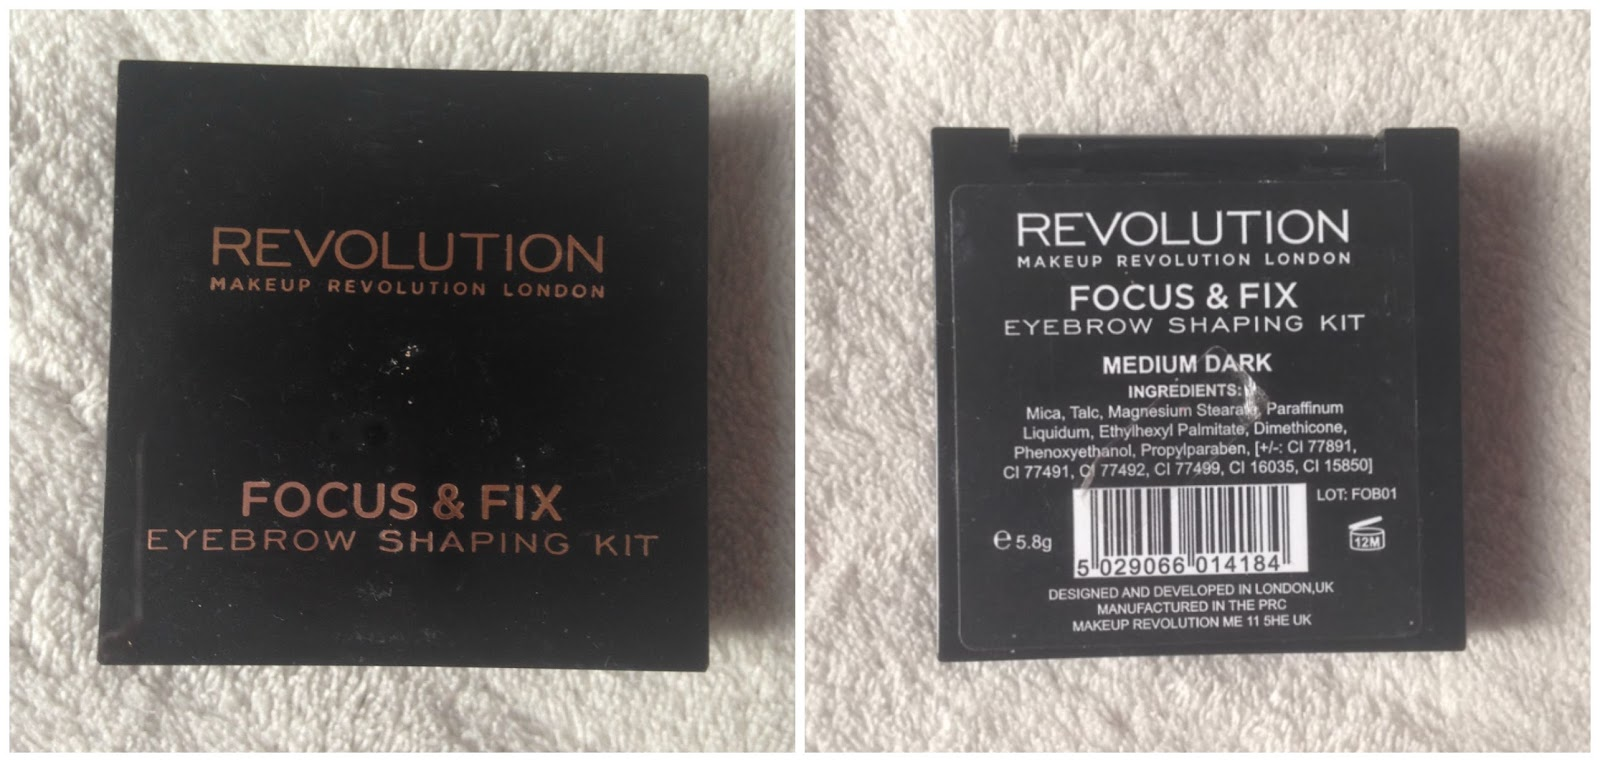 Review Makeup Revolution Eyebrow Shaping Kit Charlotte Louise